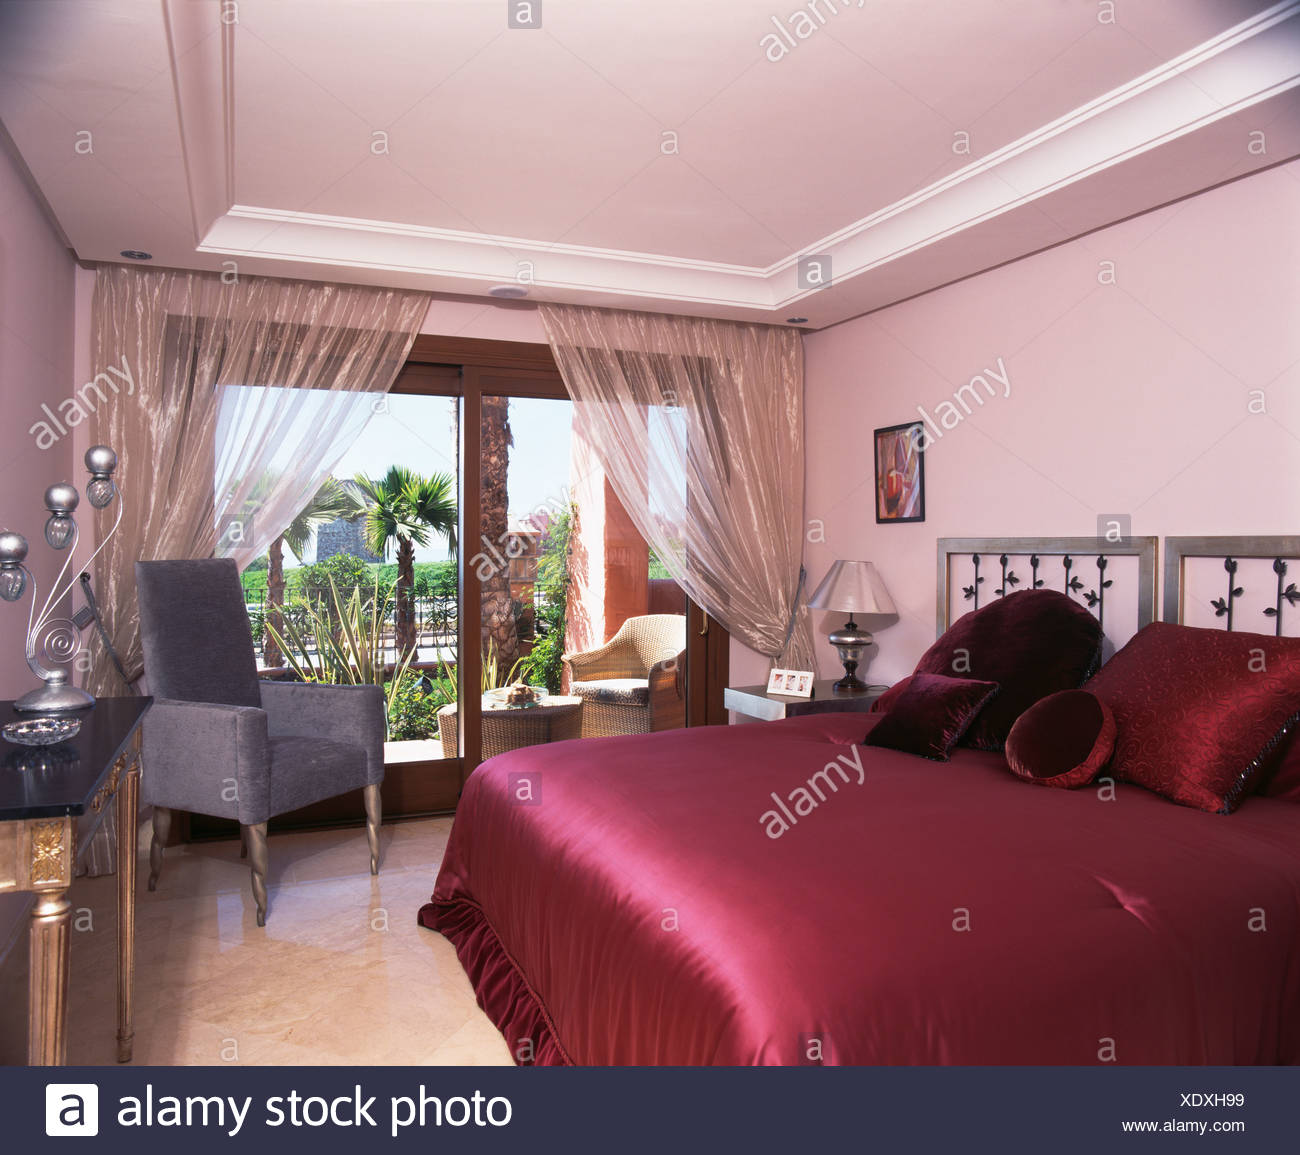 Ordinaire Red Satin Bed Cover On Bed In Modern Bedroom With Metallic Voile Curtains  On Patio Doors To Balcony